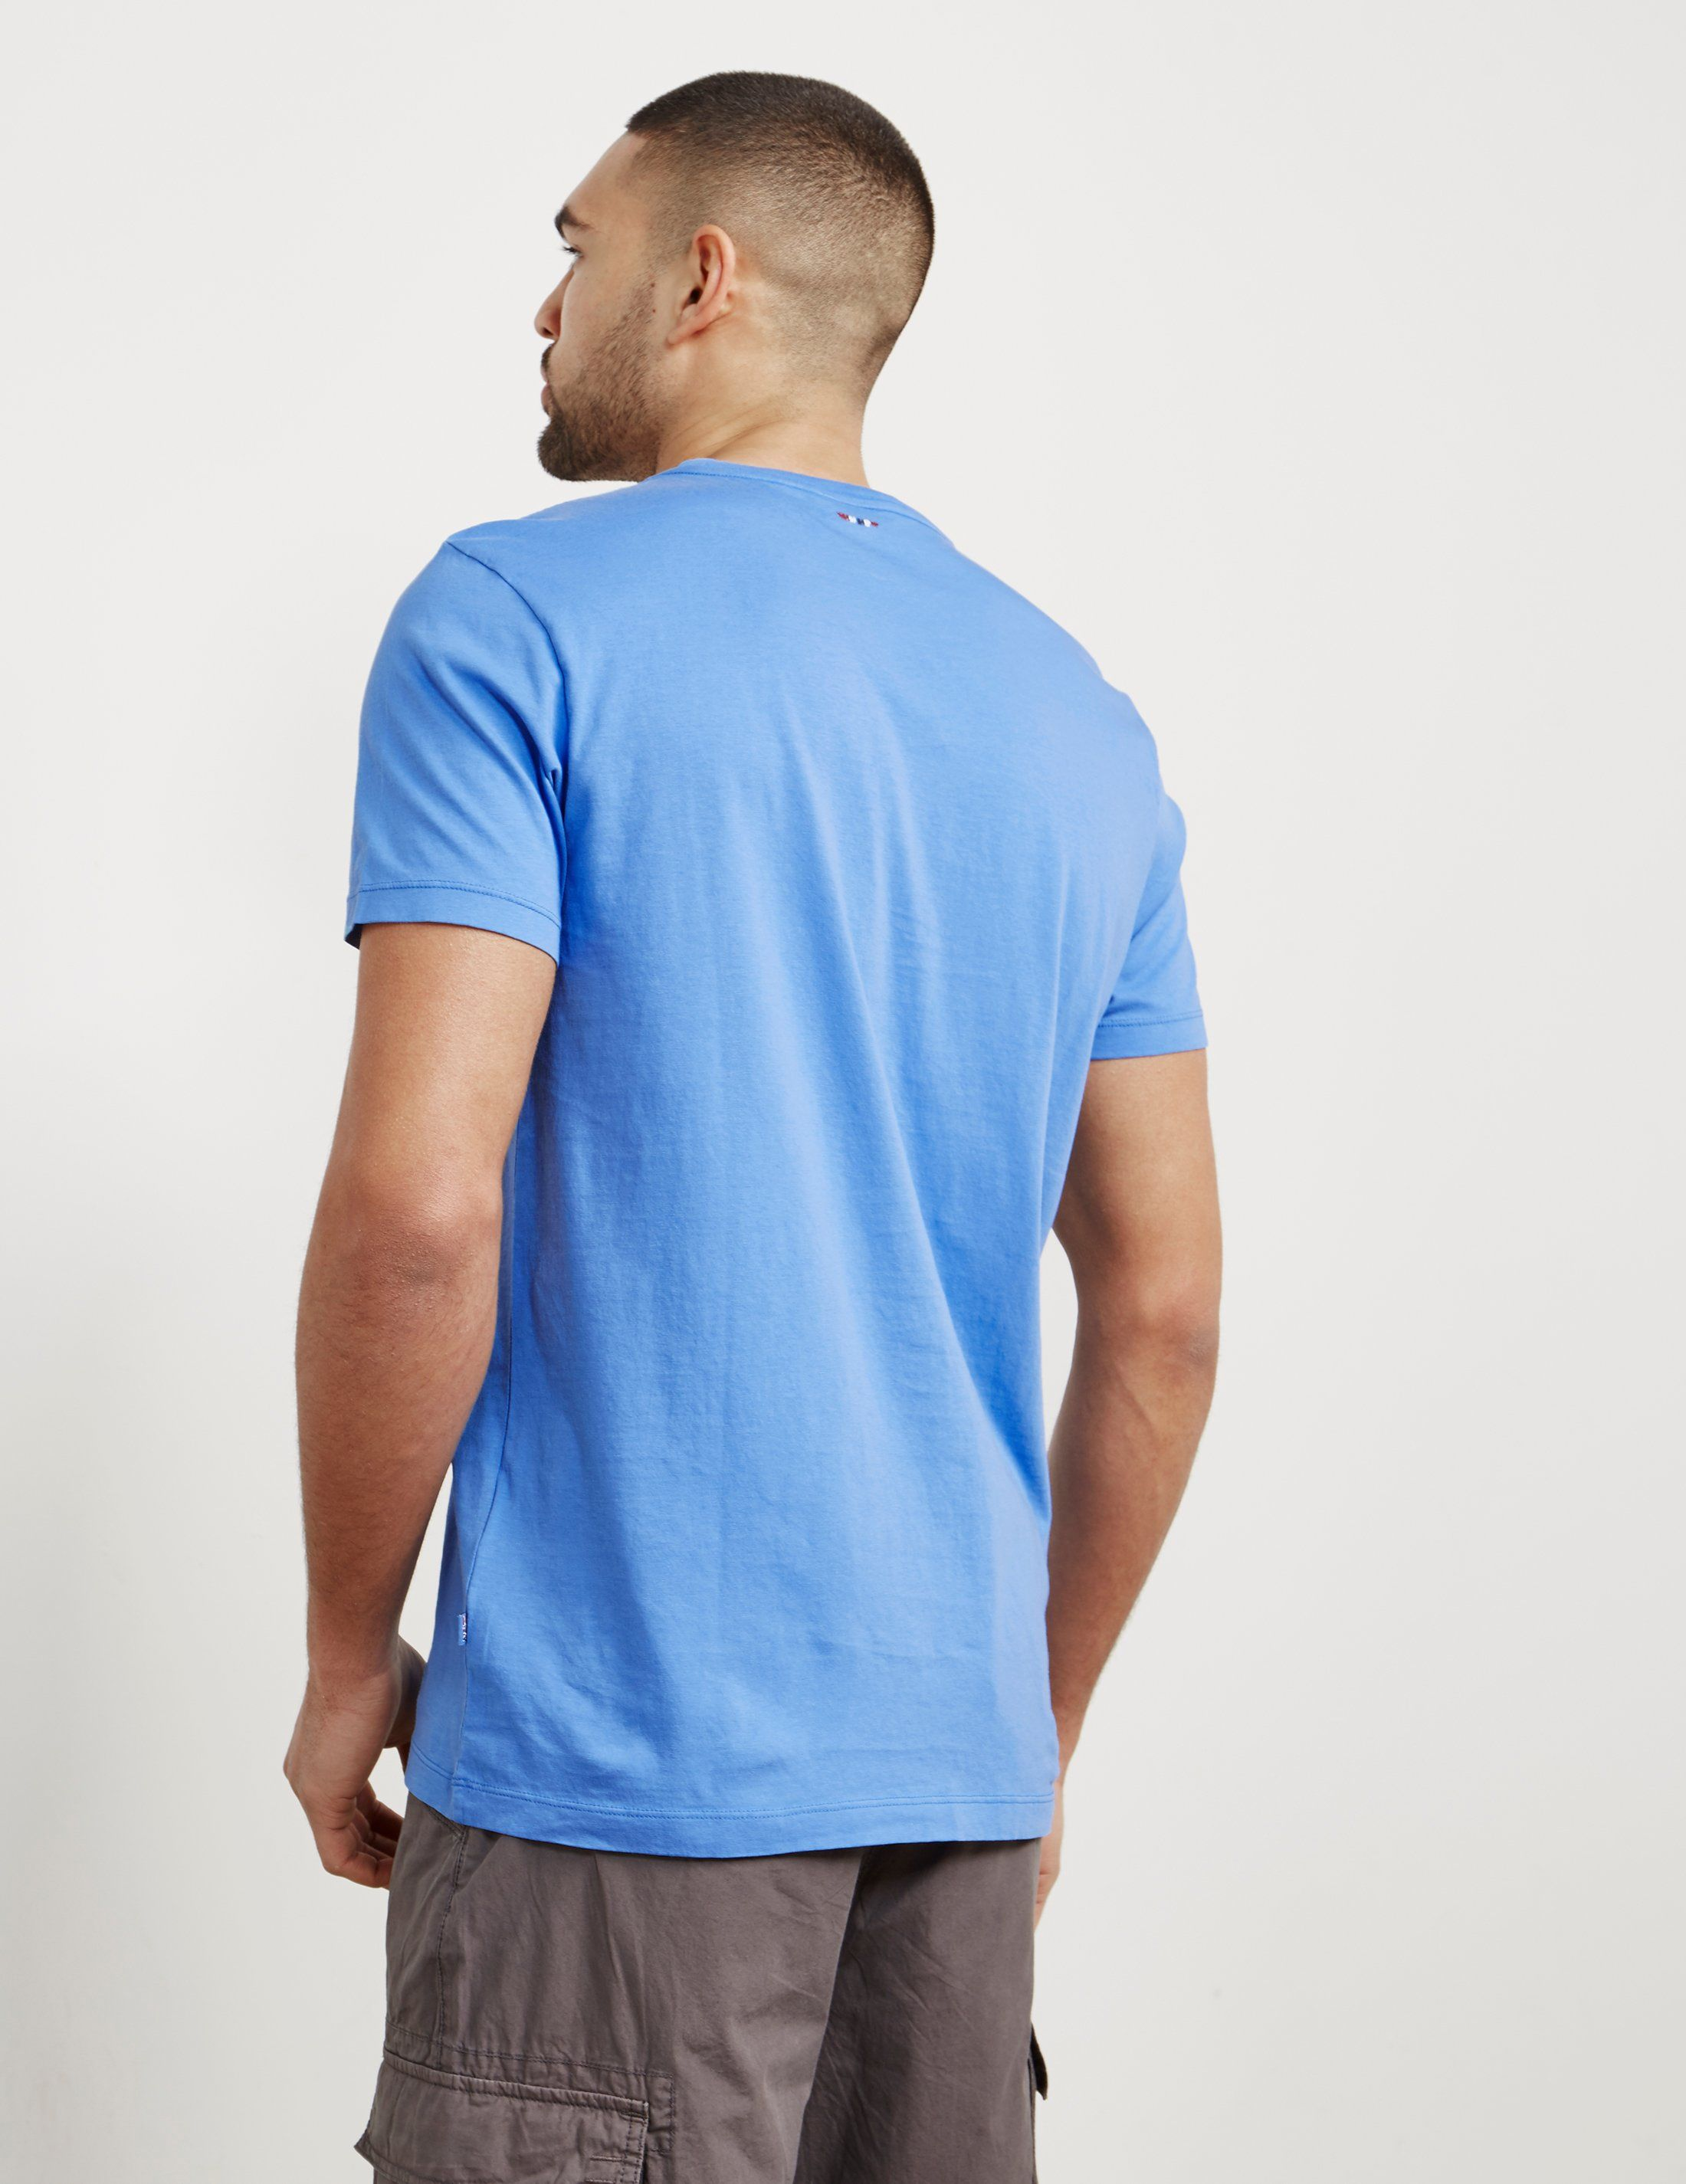 Napapijri Sapriol Core Short Sleeve T-Shirt